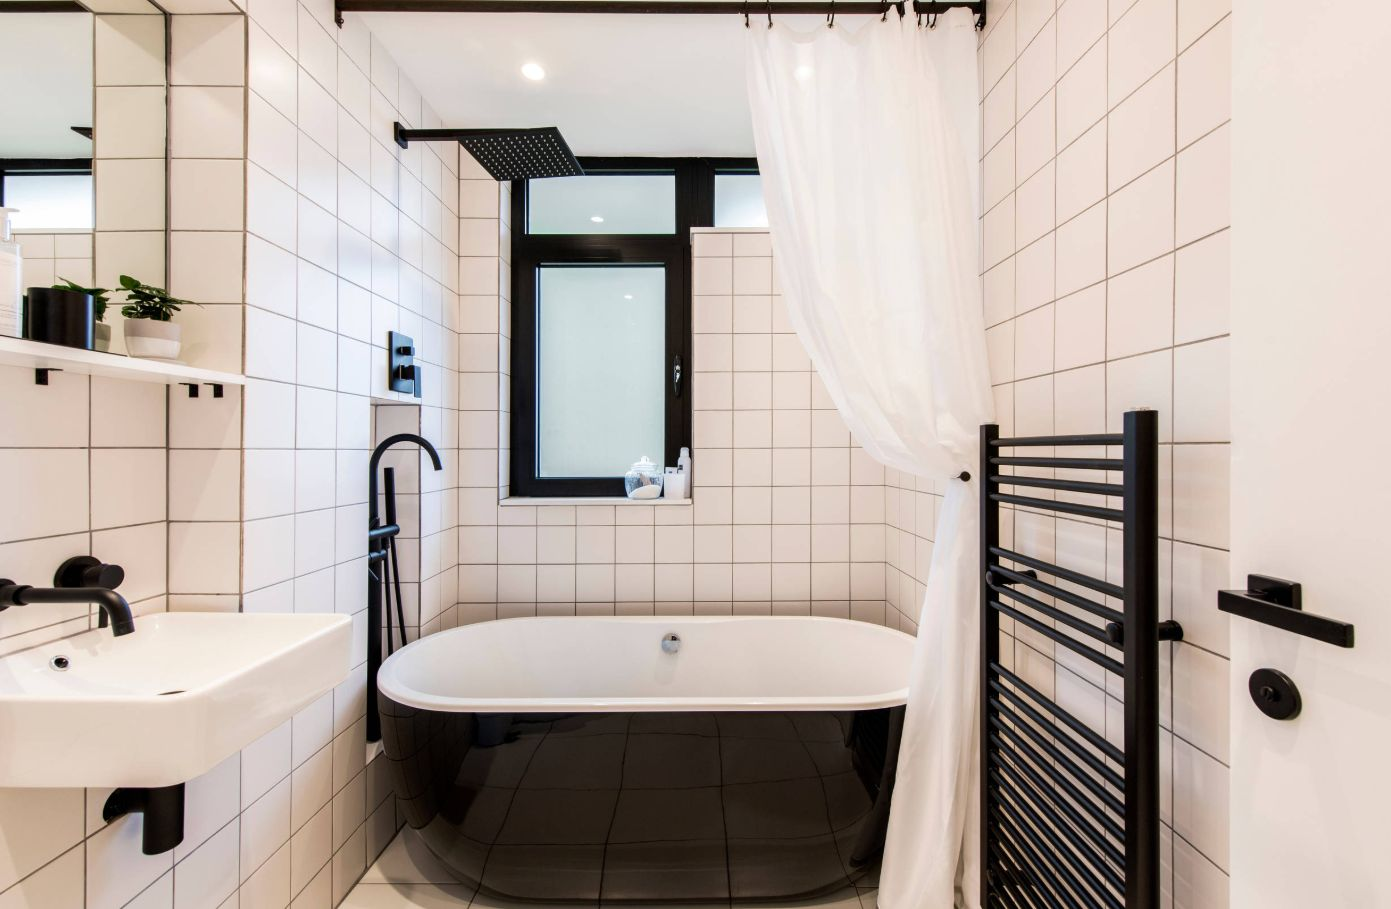 1558953966 642 black and white bathroom designs that show simple can also be interesting - Black and White Bathroom Designs That Show Simple Can Also Be Interesting